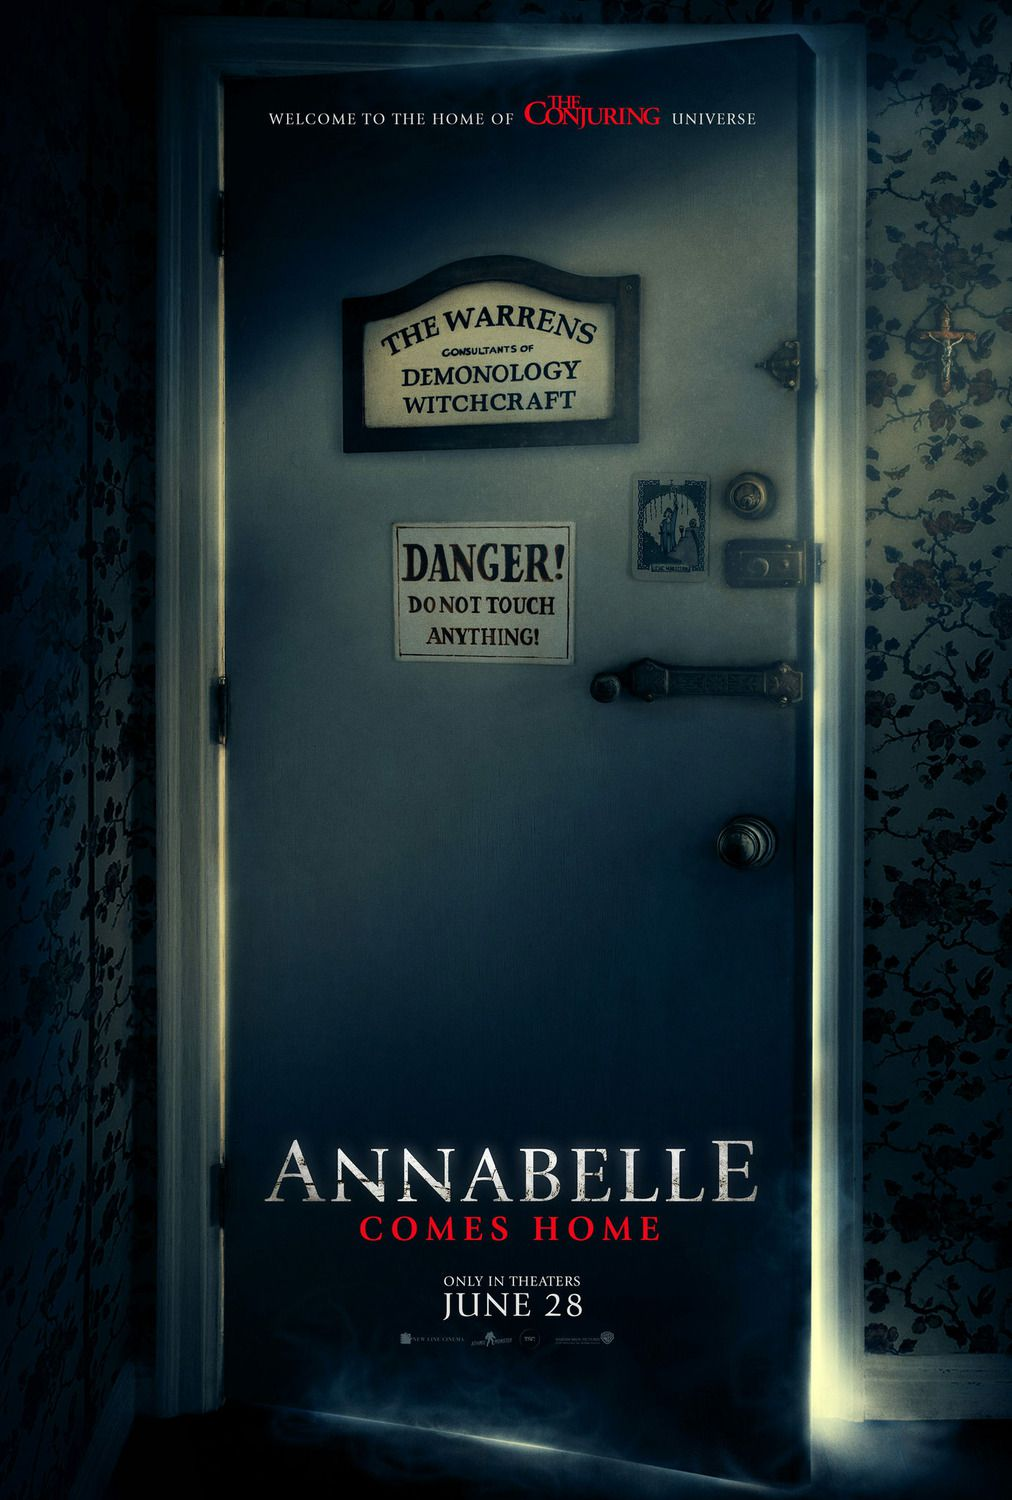 Annabelle comes Home 2019 The Warrens consultant of Demonoly Witchcraft - Danger